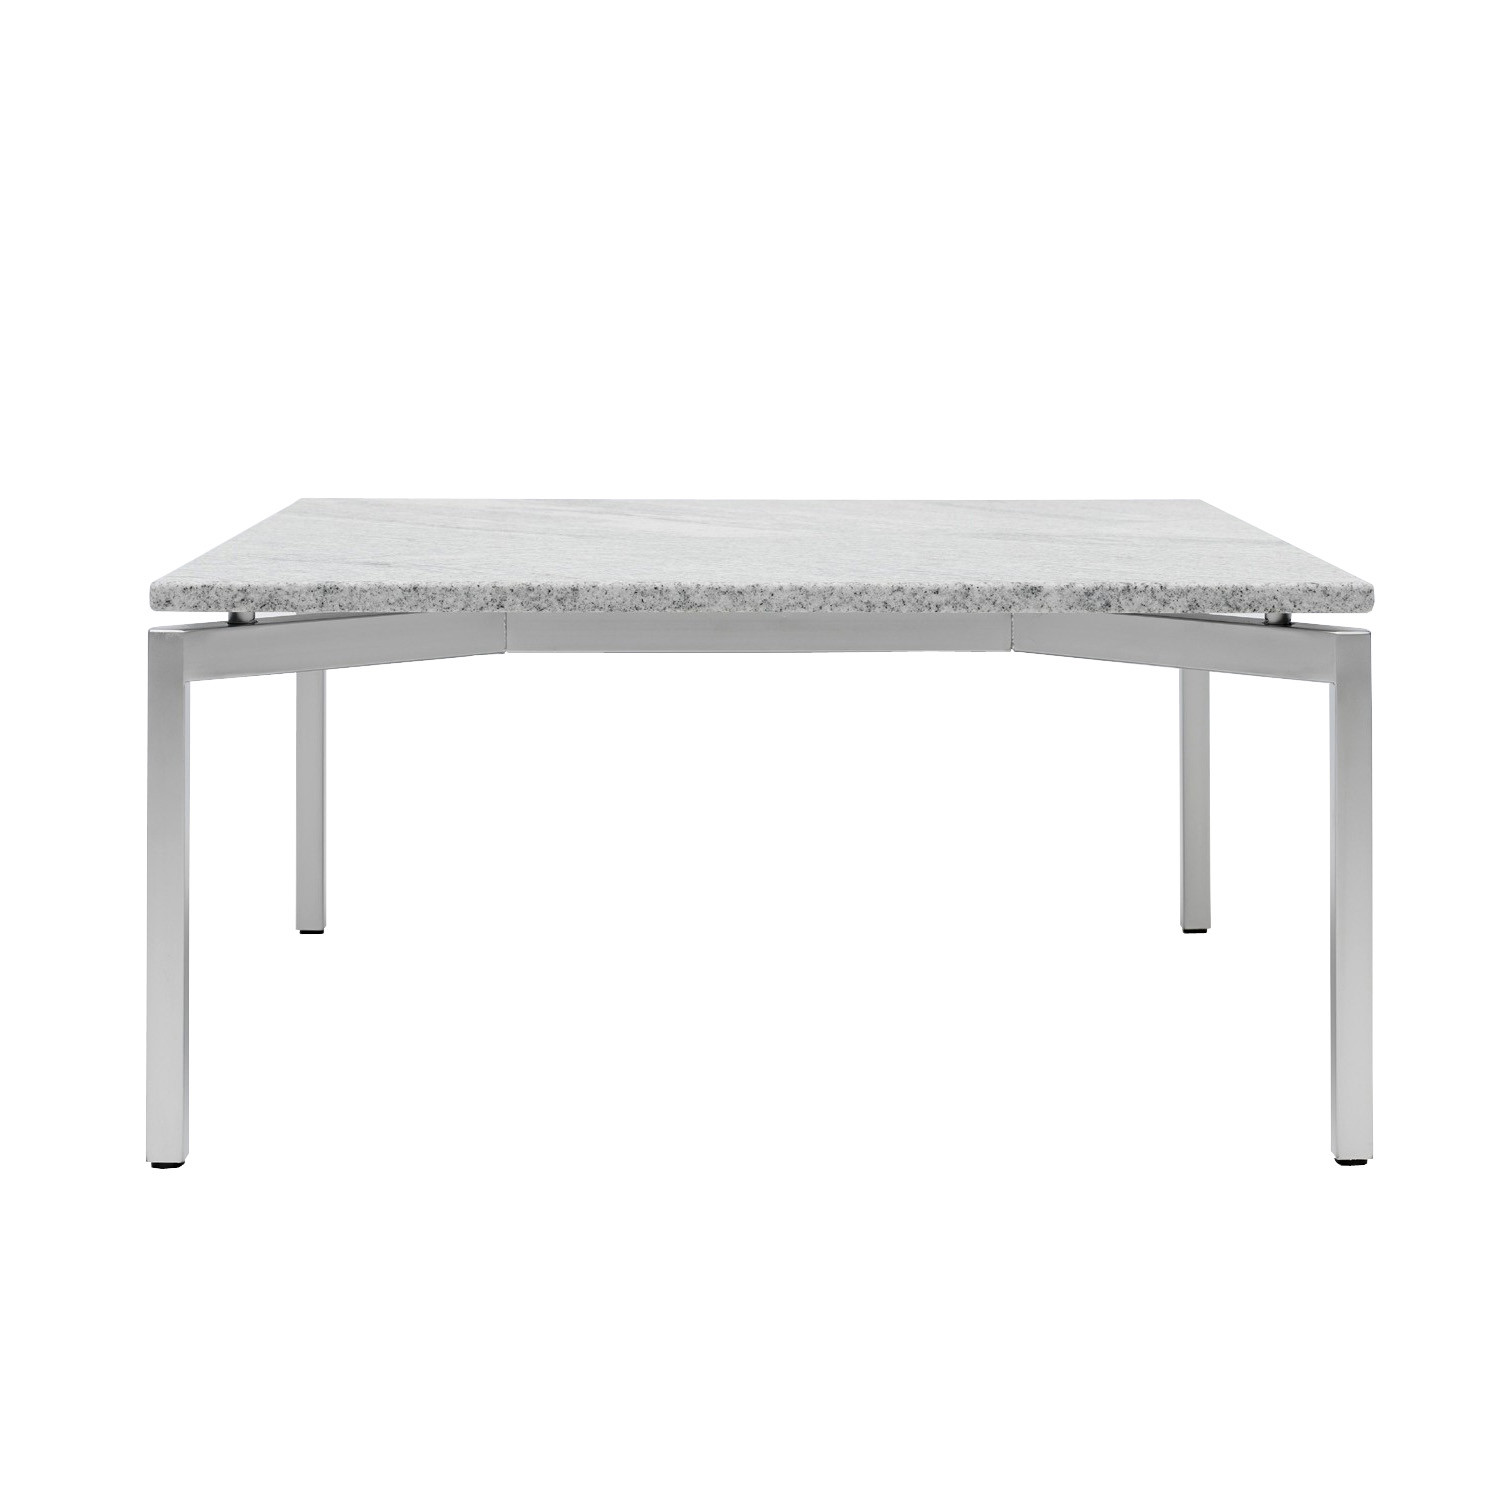 EJ 65-66 Coffee Table